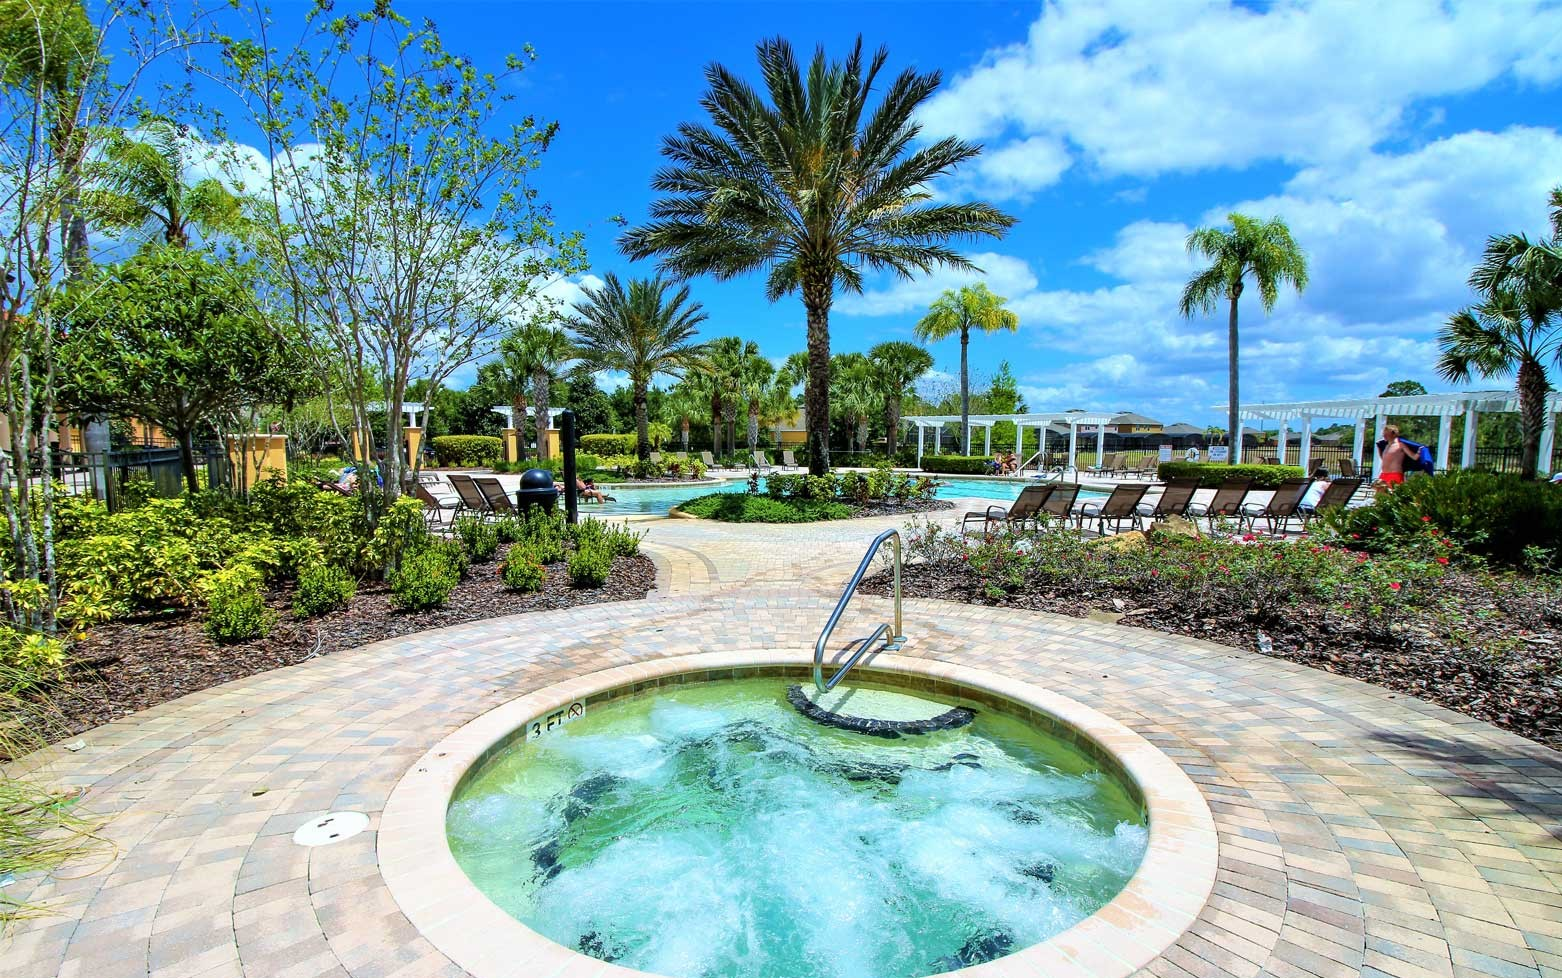 Watersong Resort/DR5929-145248